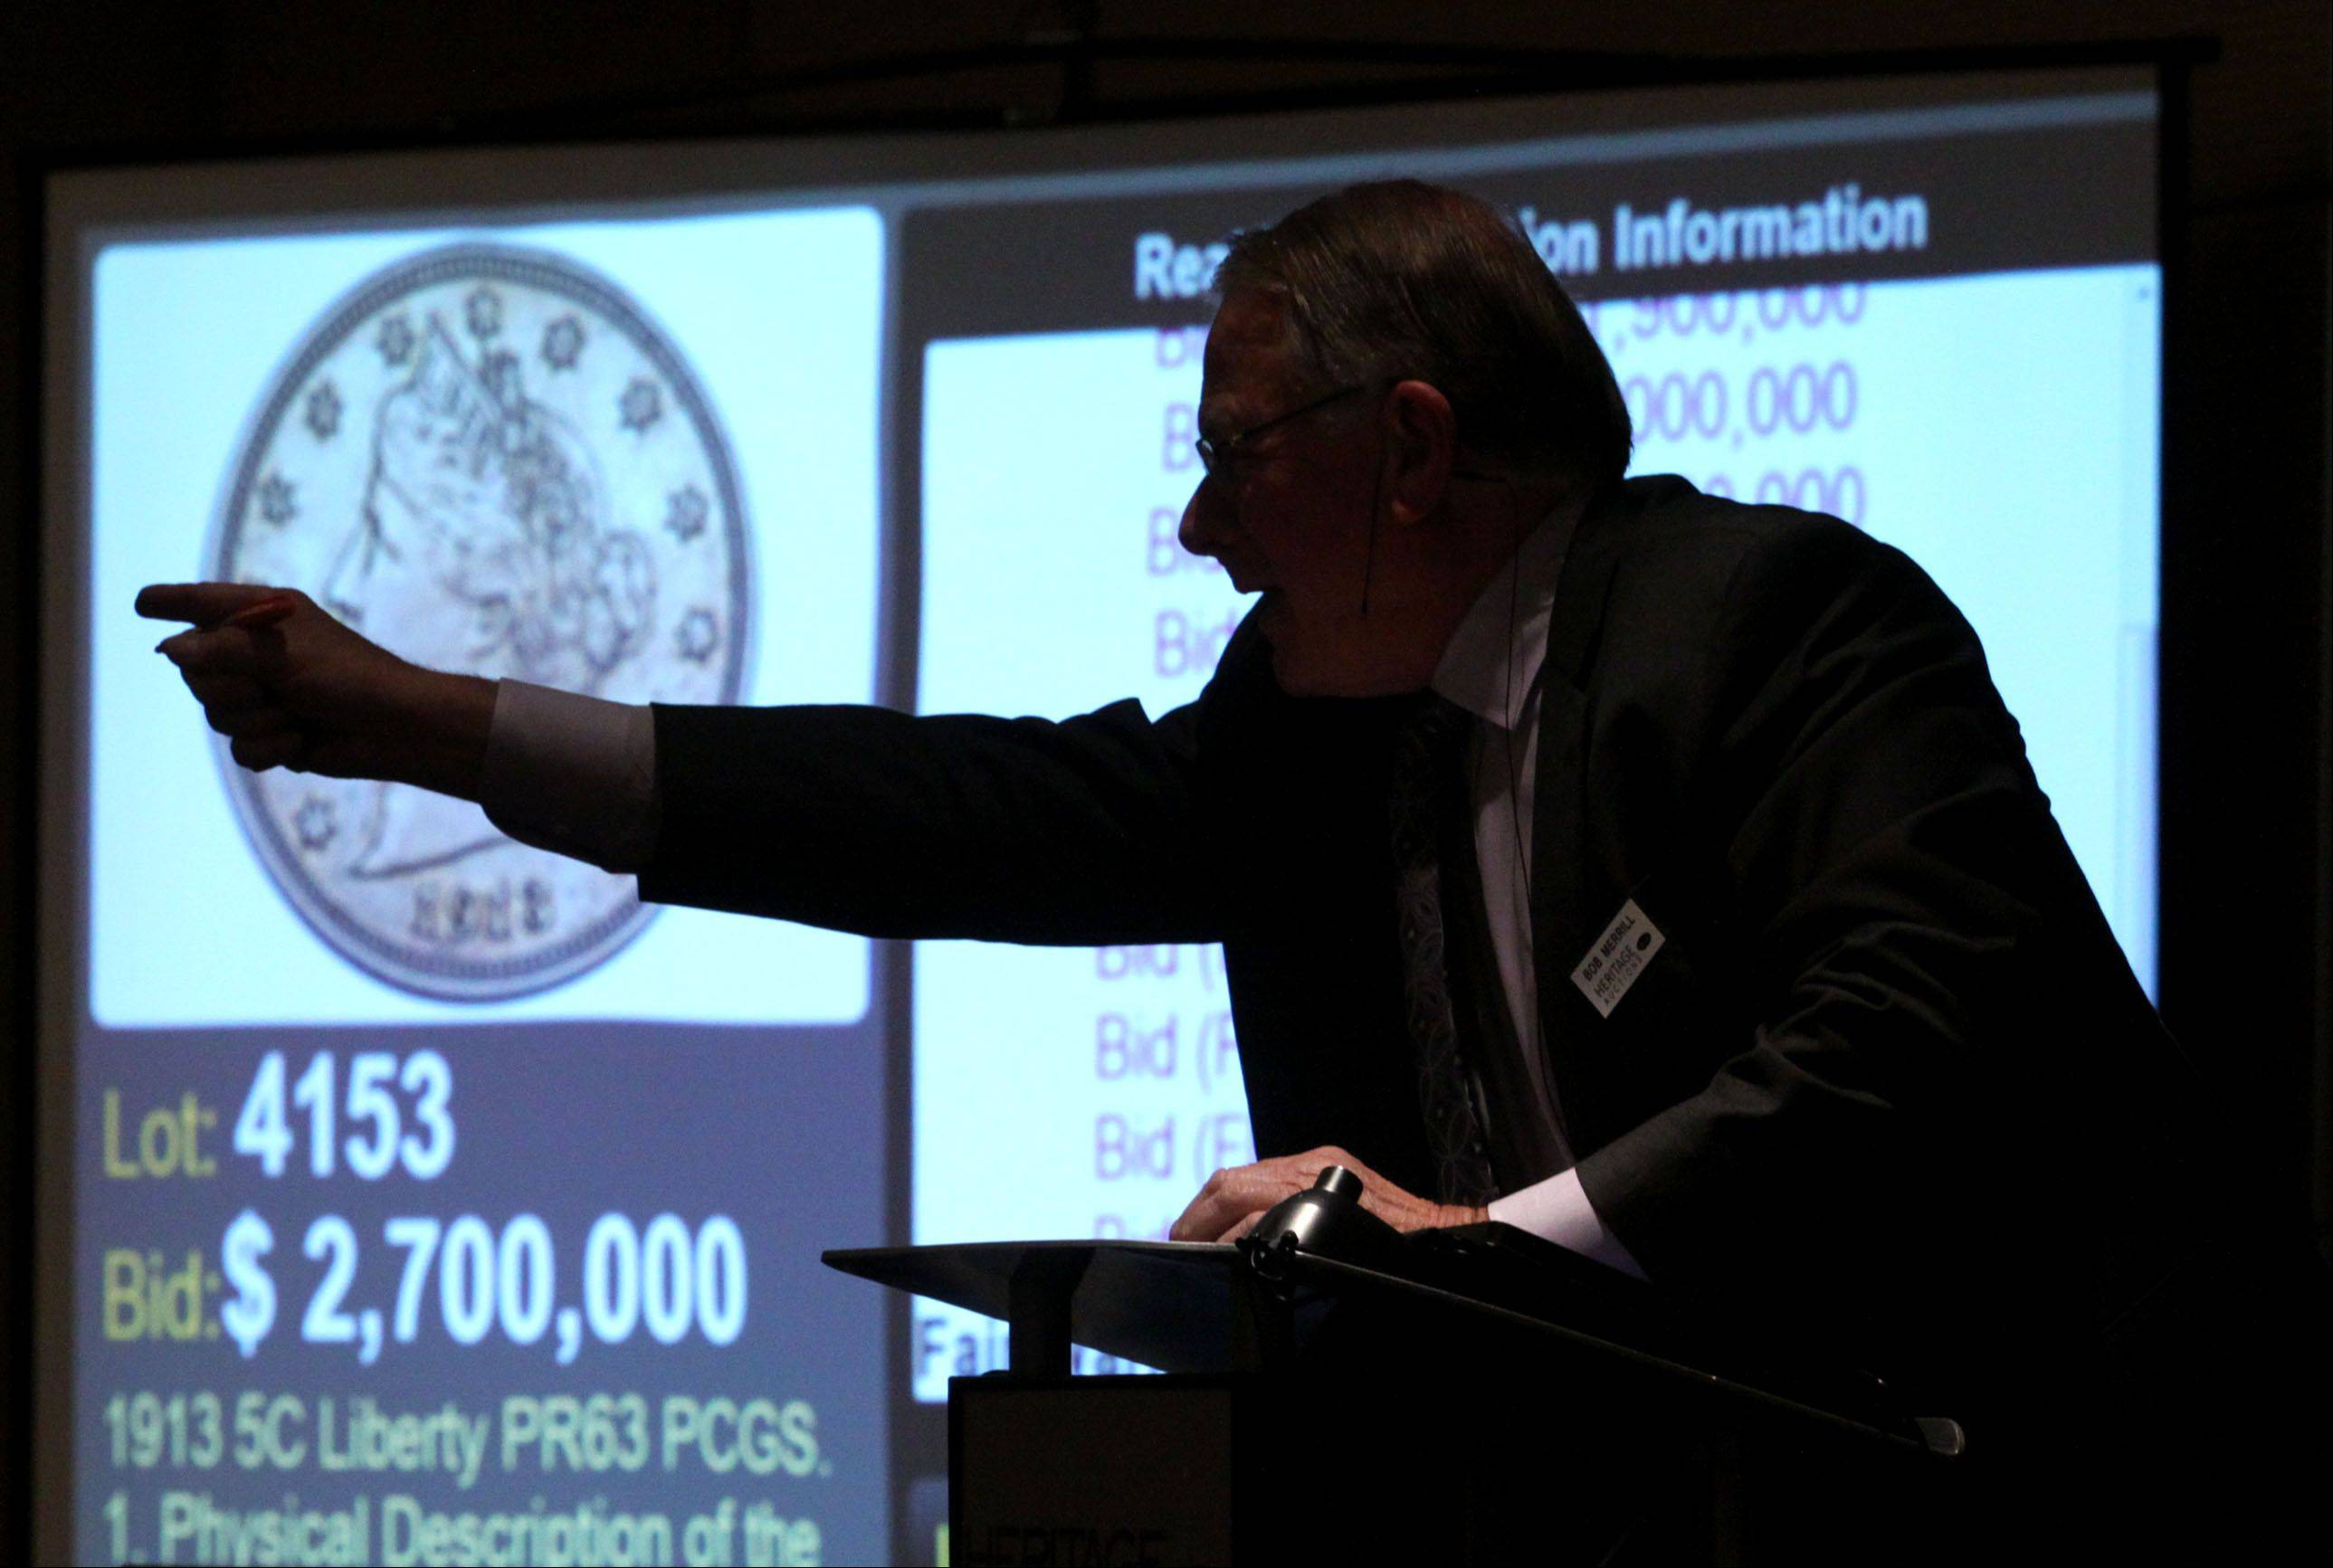 Auctioneer Bob Merrill of Heritage Auctions calls the winning bid at $2.7 million as a 1913 Liberty Head Nickel was auctioned Thursday night during the Central States Numismatic Society show at the Schaumburg Convention Center.